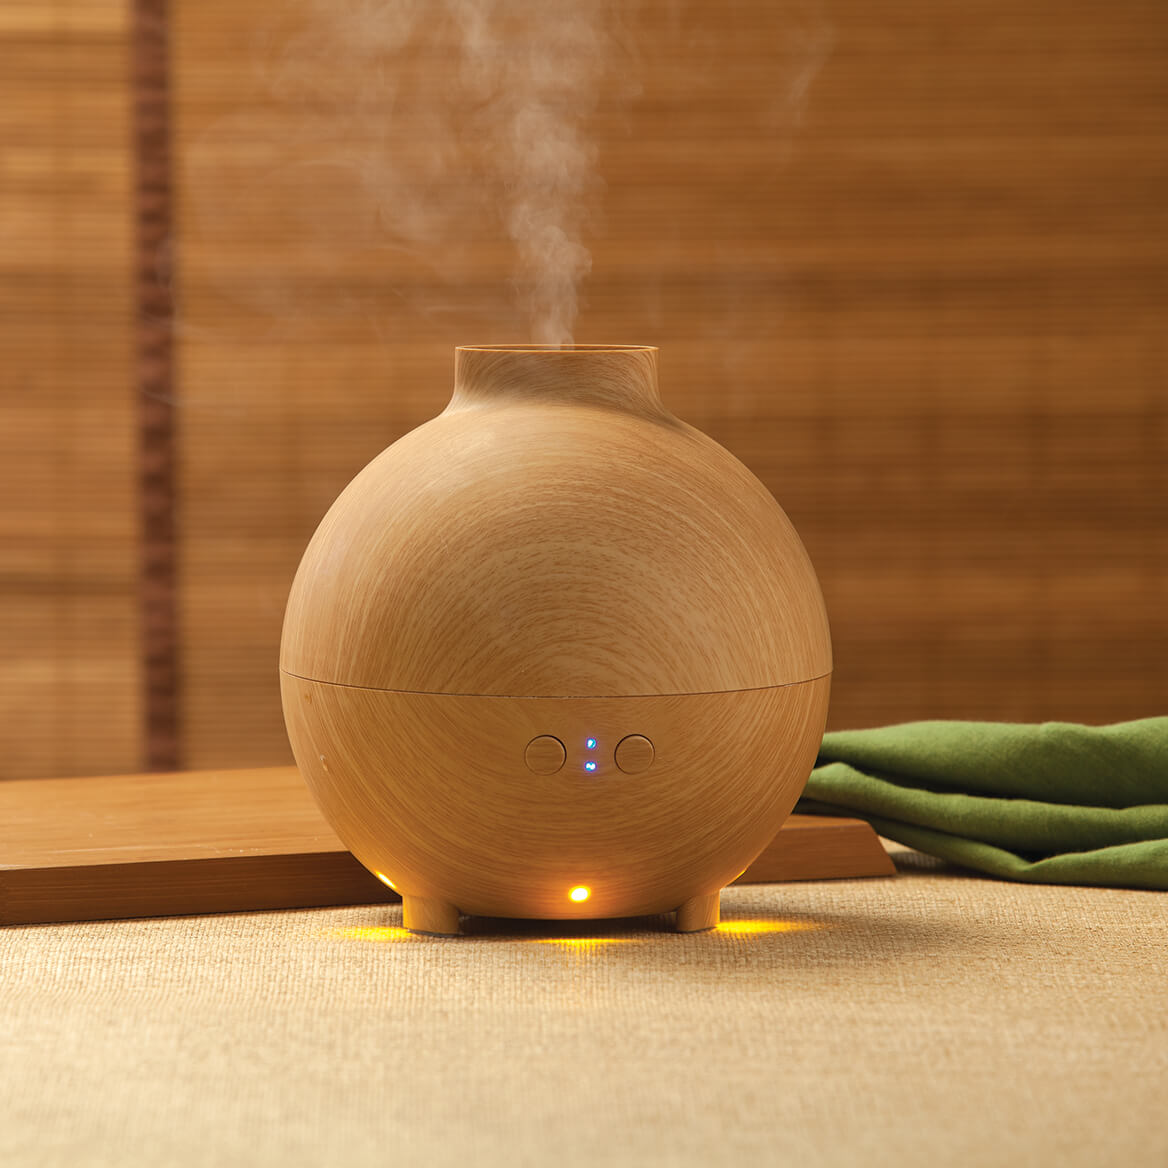 Lighted Oil Diffuser & Humidifier, 600 ml-356189